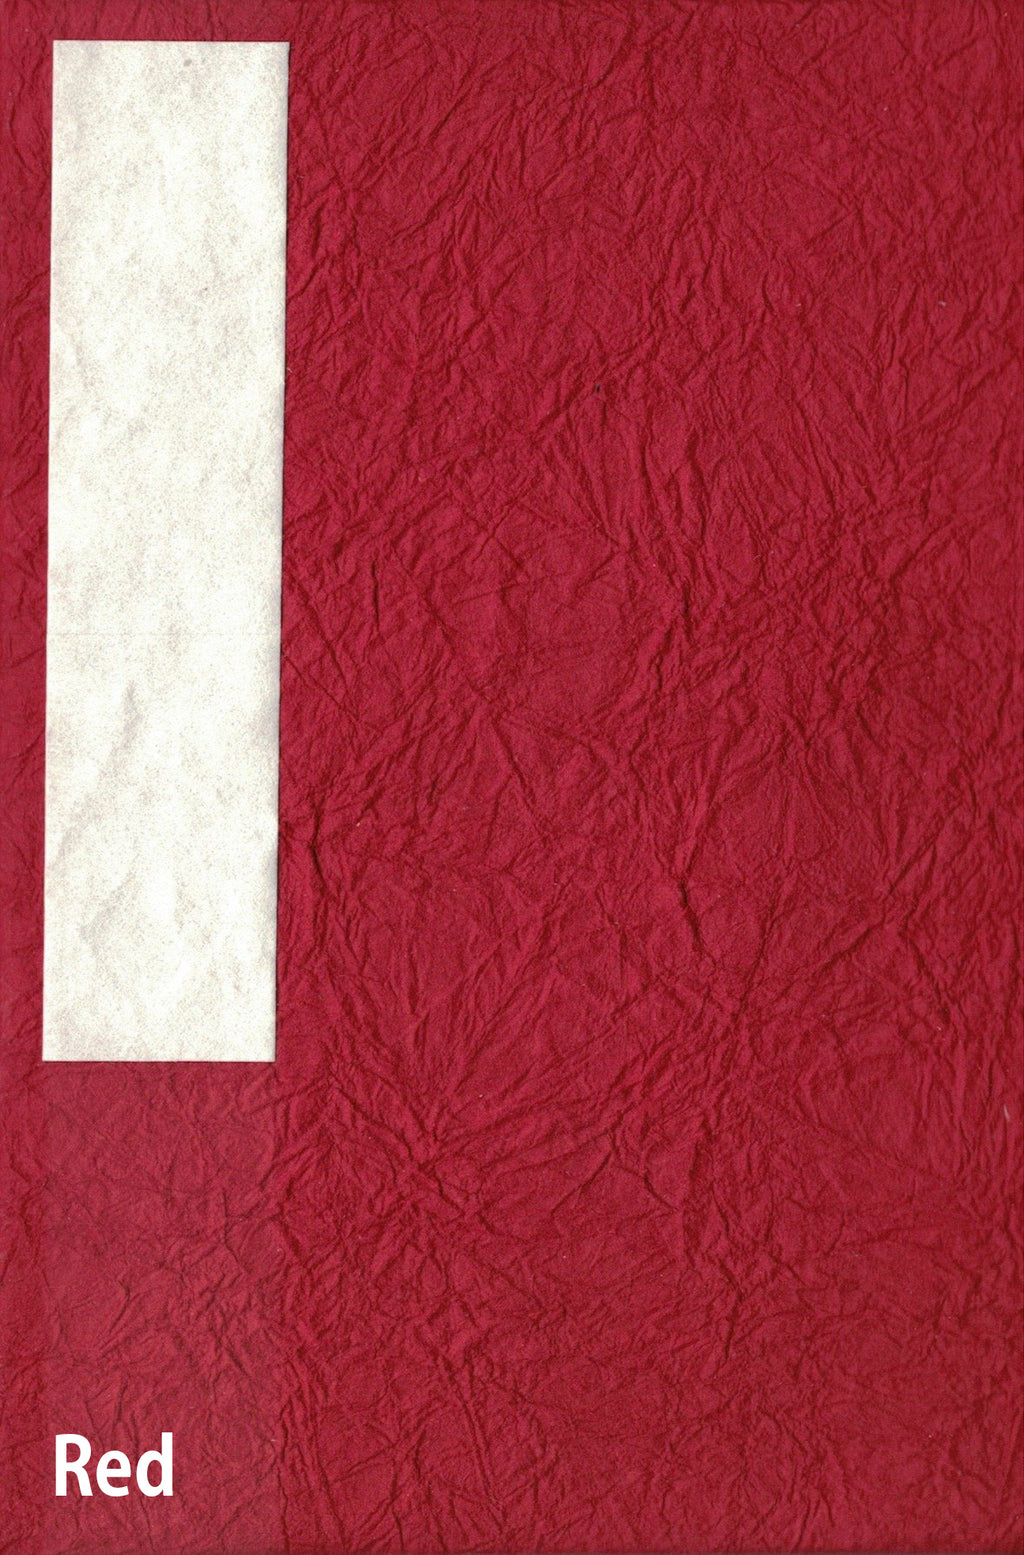 Orihon- Japanese Accordion Notebooks: Small 10 colors